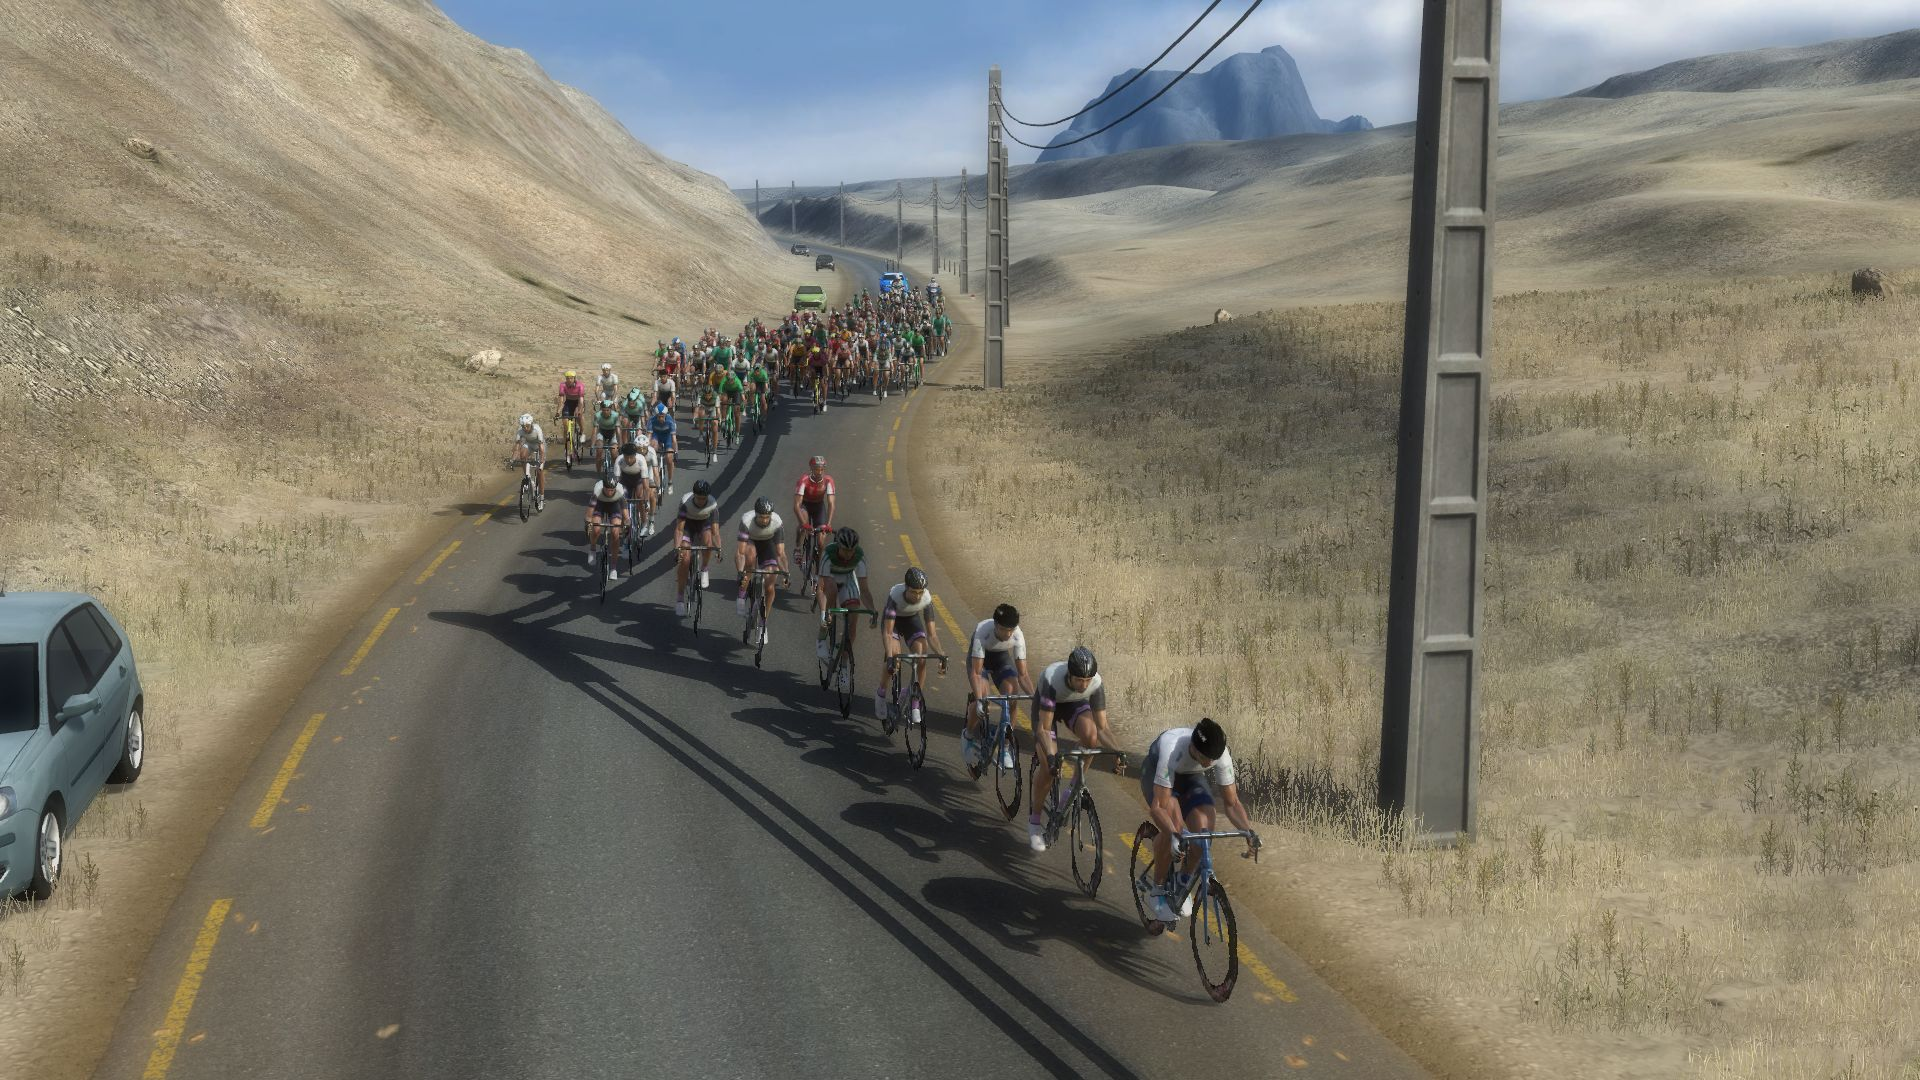 pcmdaily.com/images/mg/2019/Races/C2HC/Eritrea/TOES1%2011.jpg